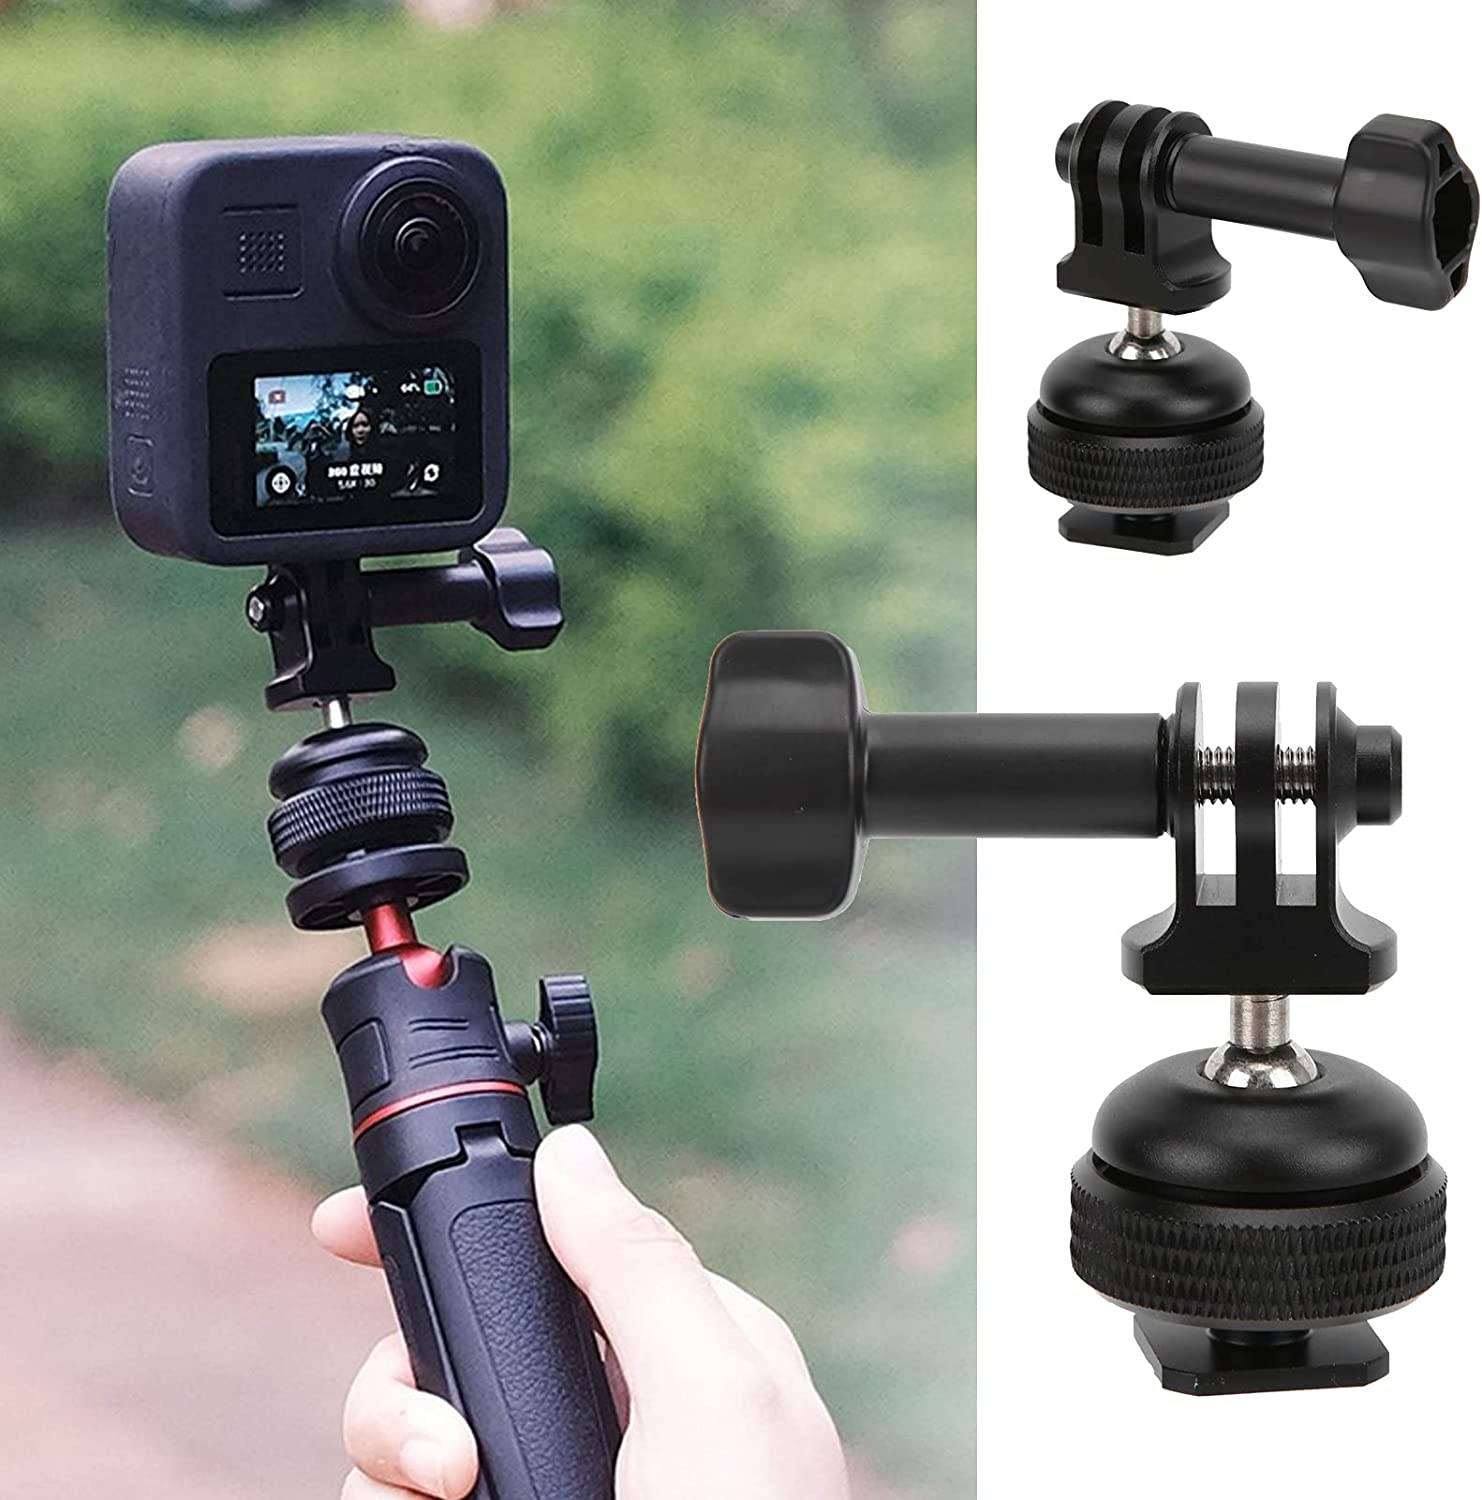 Gedourain Mini Special Campaign Camera 360 Degree Popular shop is the lowest price challenge Ball Rotation Head 36 Adjusted